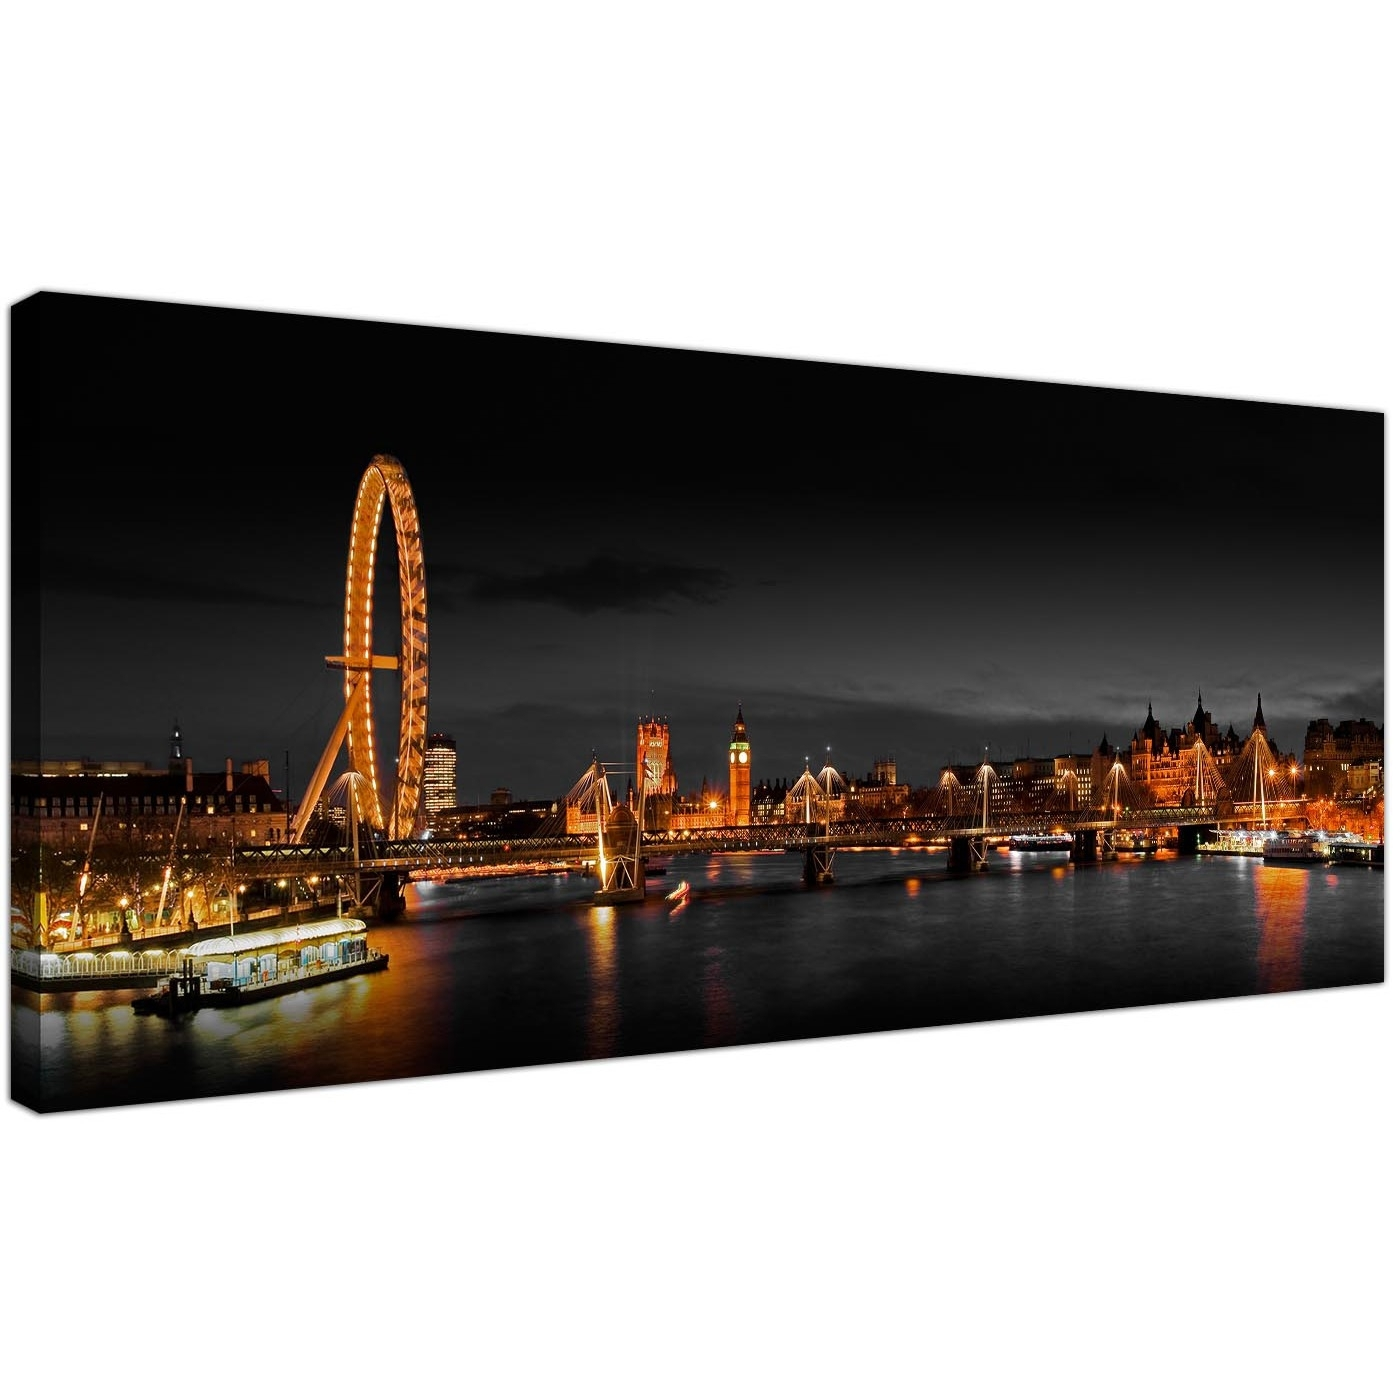 Panoramic Canvas Wall Art Of London Eye At Night For Your Living Room Regarding Latest Cheap Canvas Wall Art (View 13 of 15)